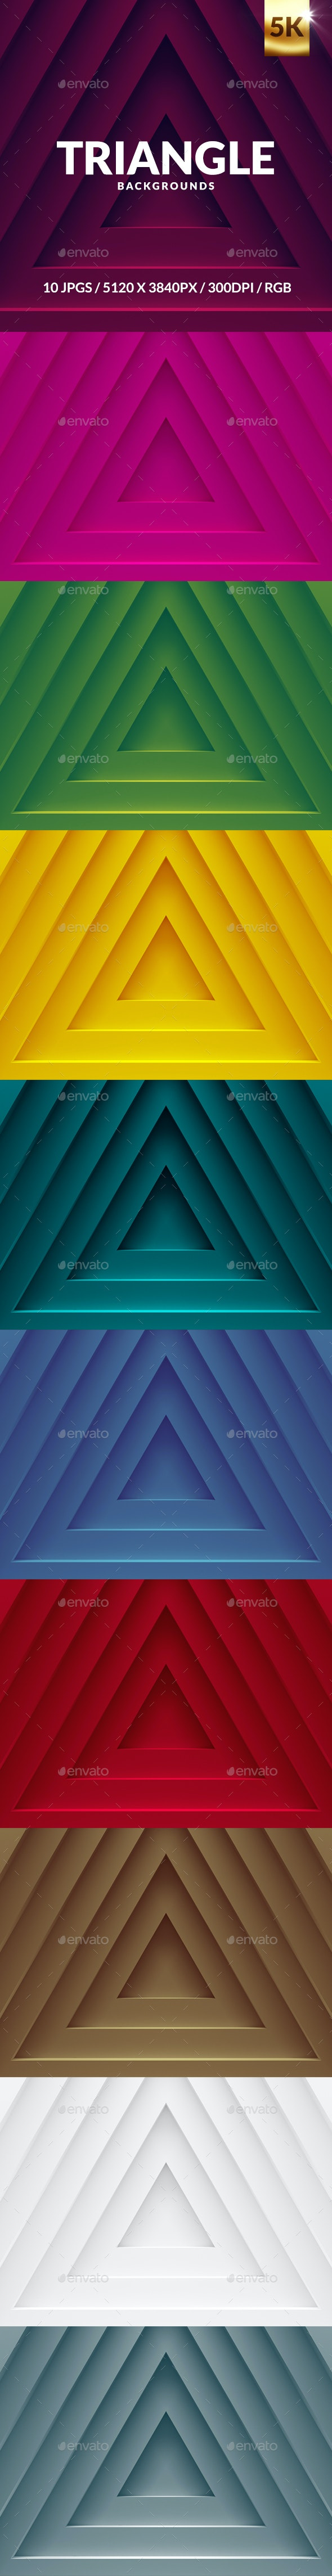 Triangle-backgrounds - Backgrounds Graphics